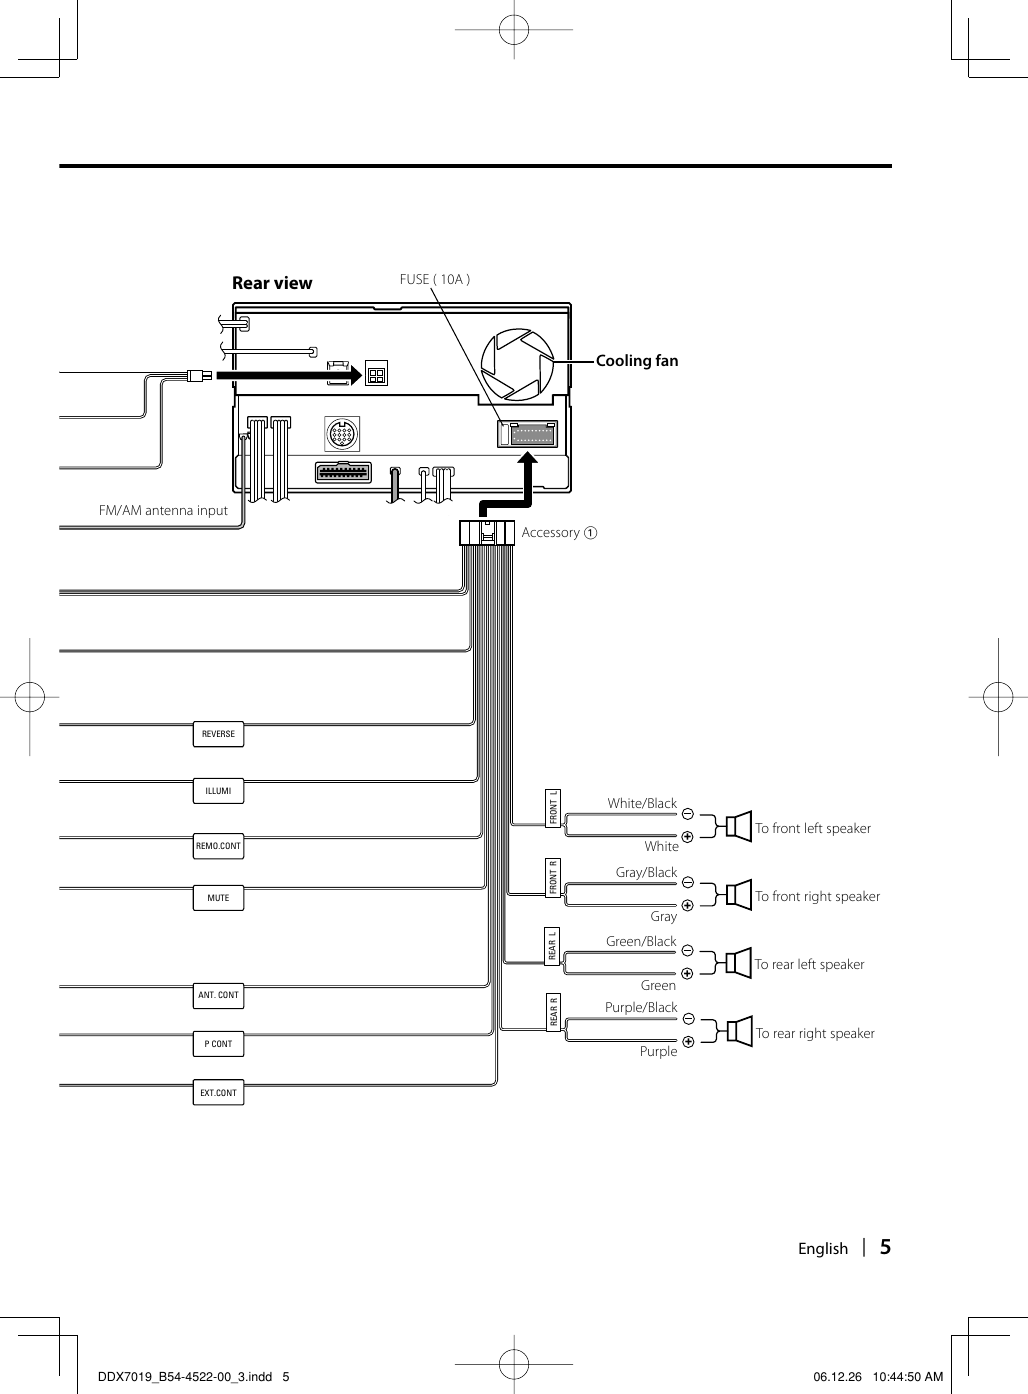 hight resolution of kenwood dnx7100 wiring diagram schema diagram database wiring diagram kenwood dnx7100